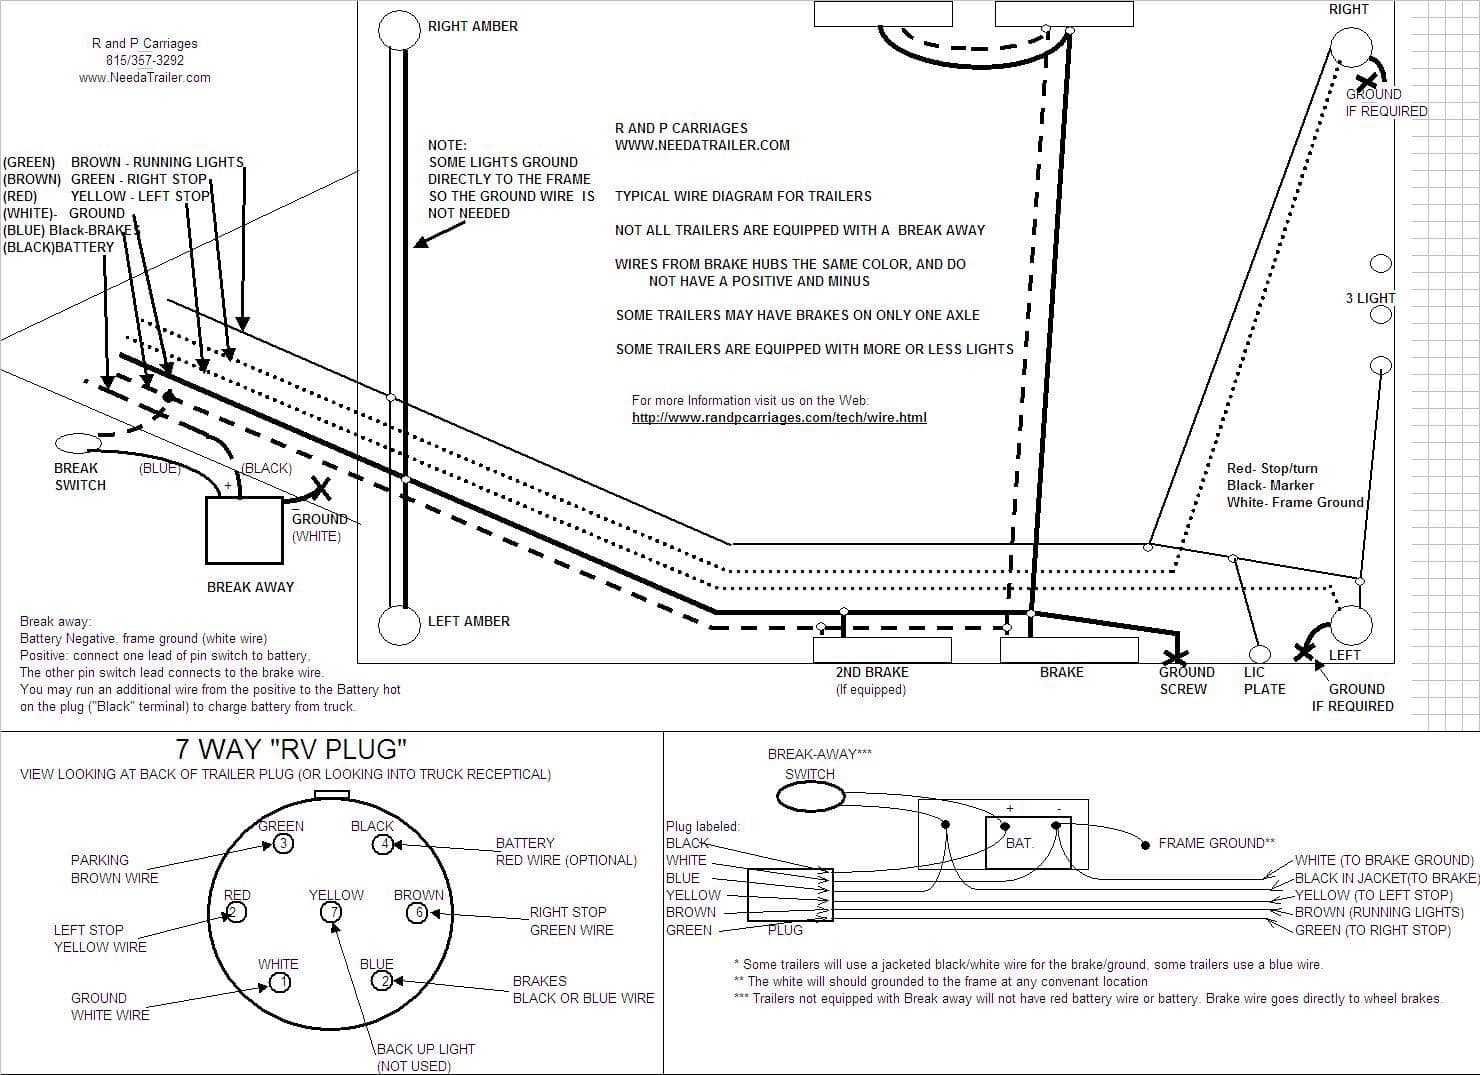 7 Way Plug Information R And P Carriages Cargo Utility Dump Pace Enclosed Trailer Wiring Diagram